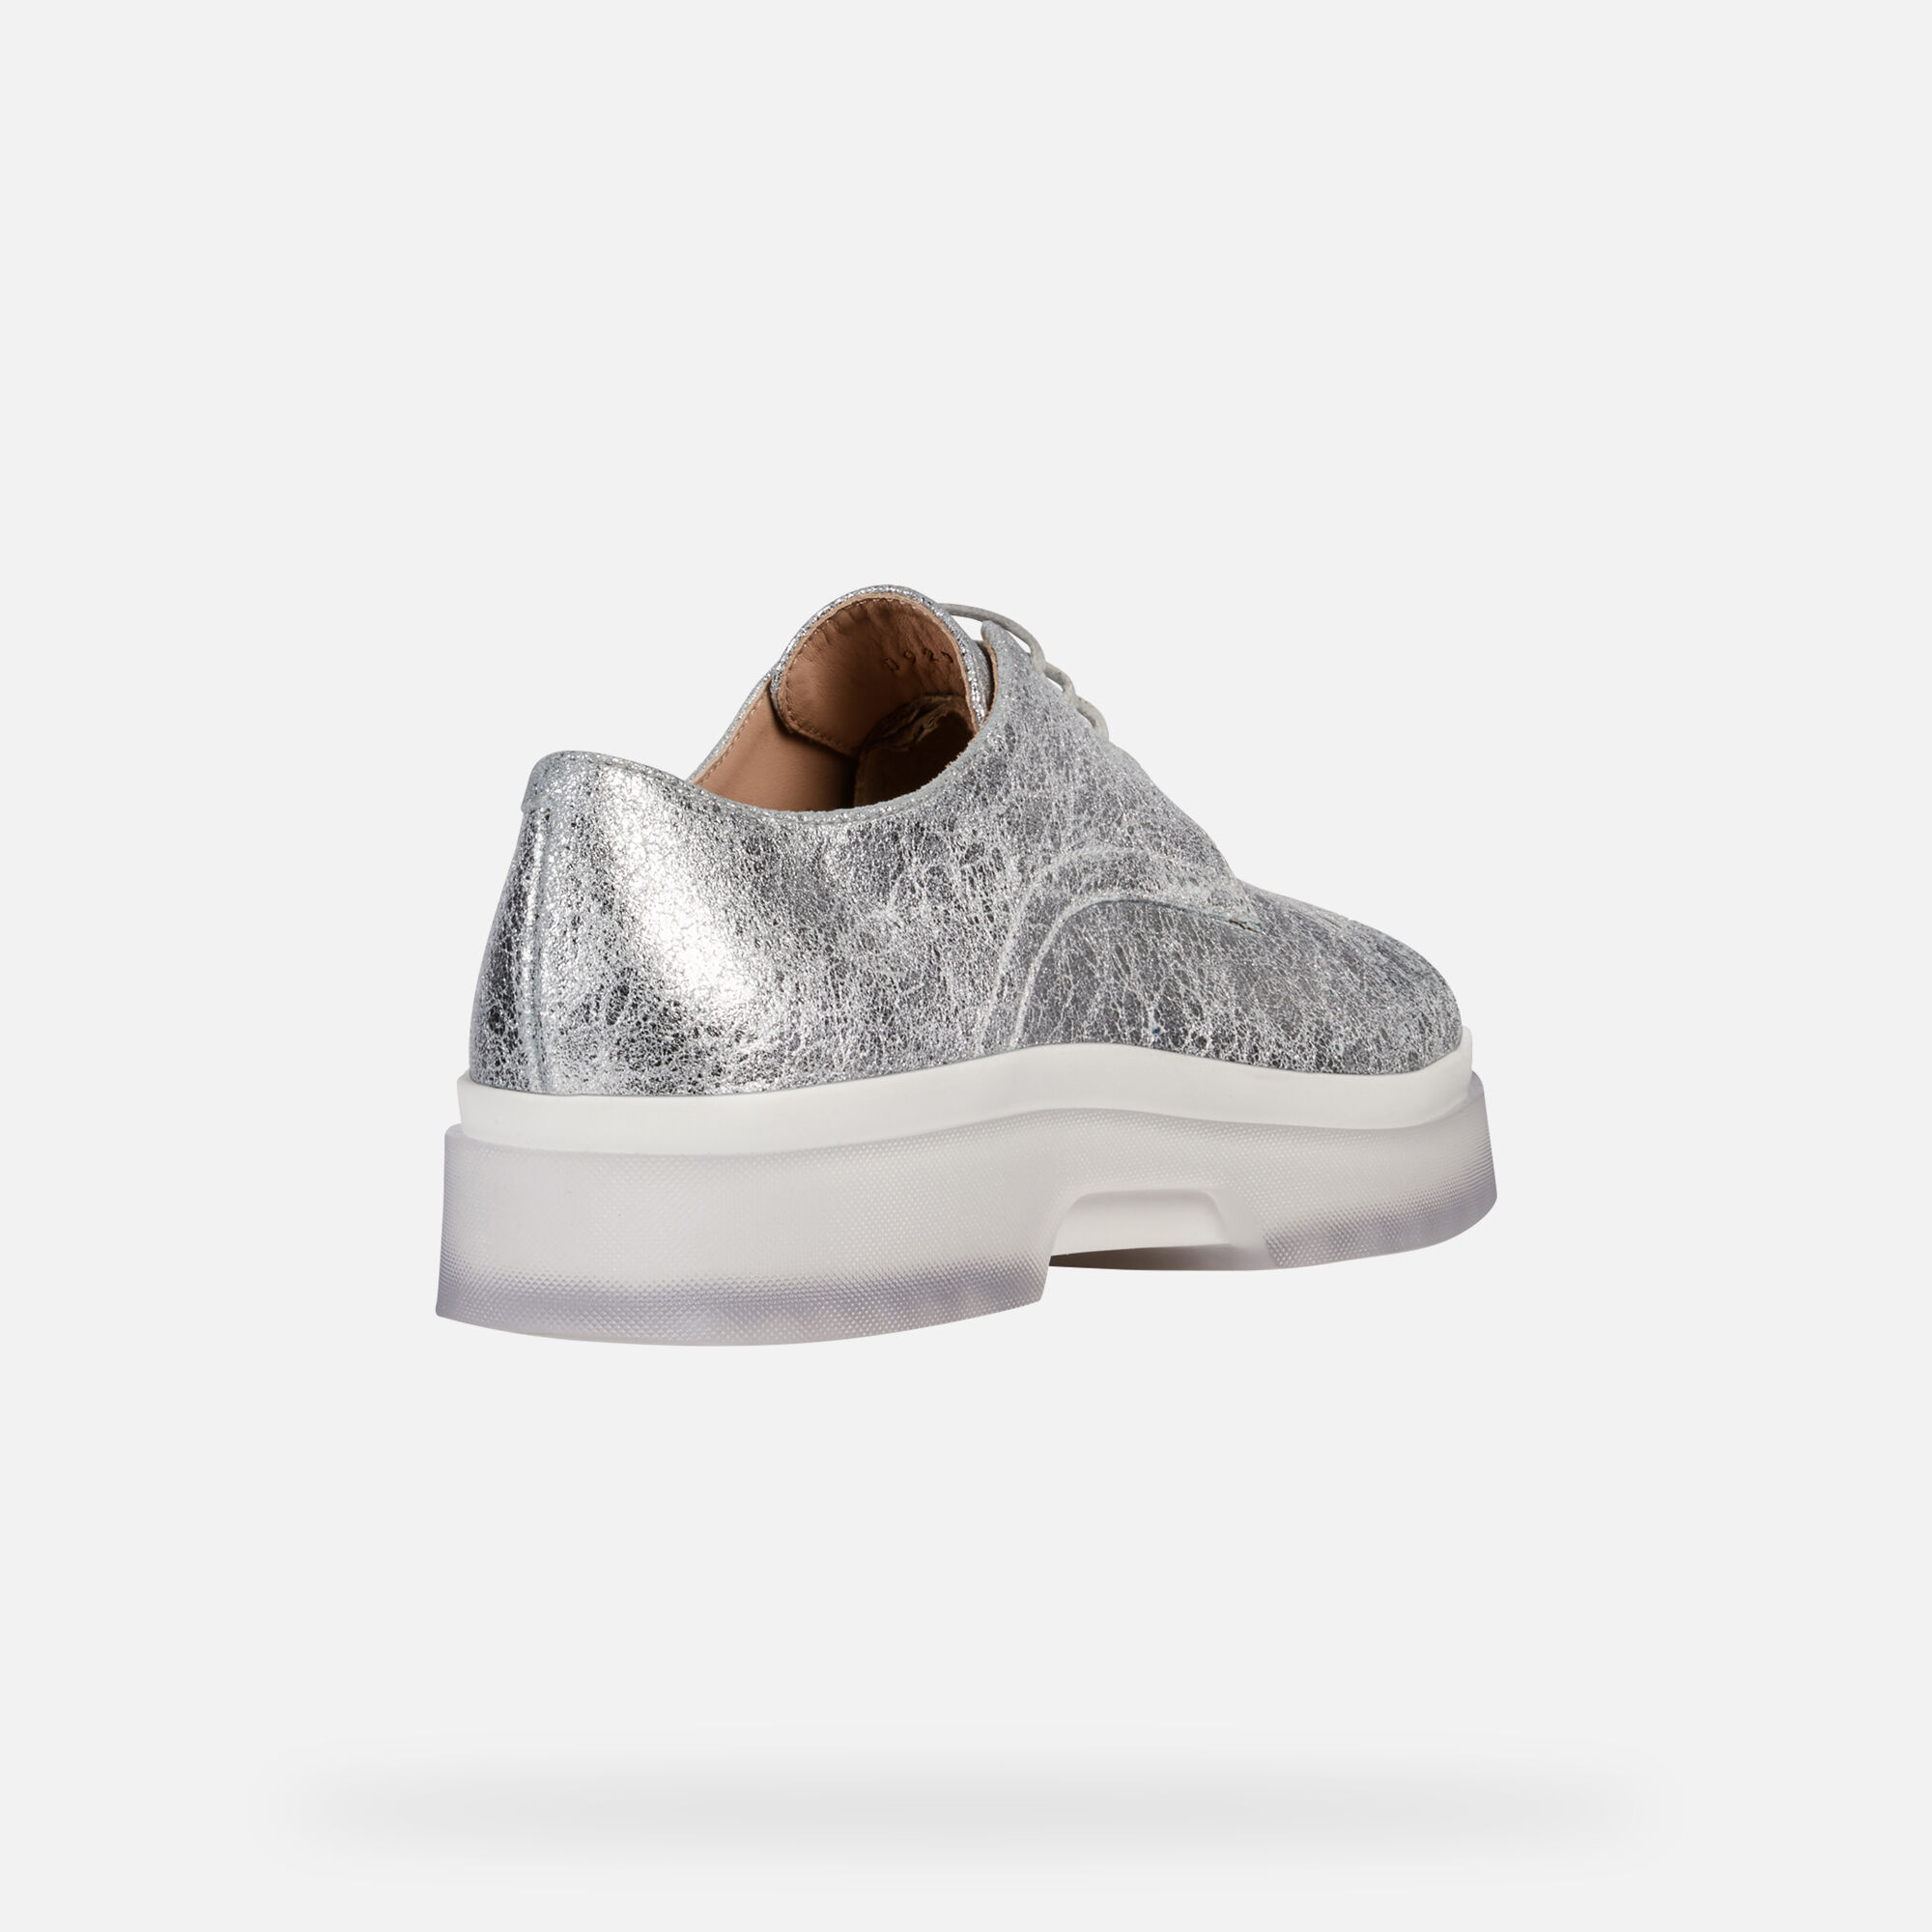 Geox D MYLUSE: Silver Woman Shoes | Geox SS19